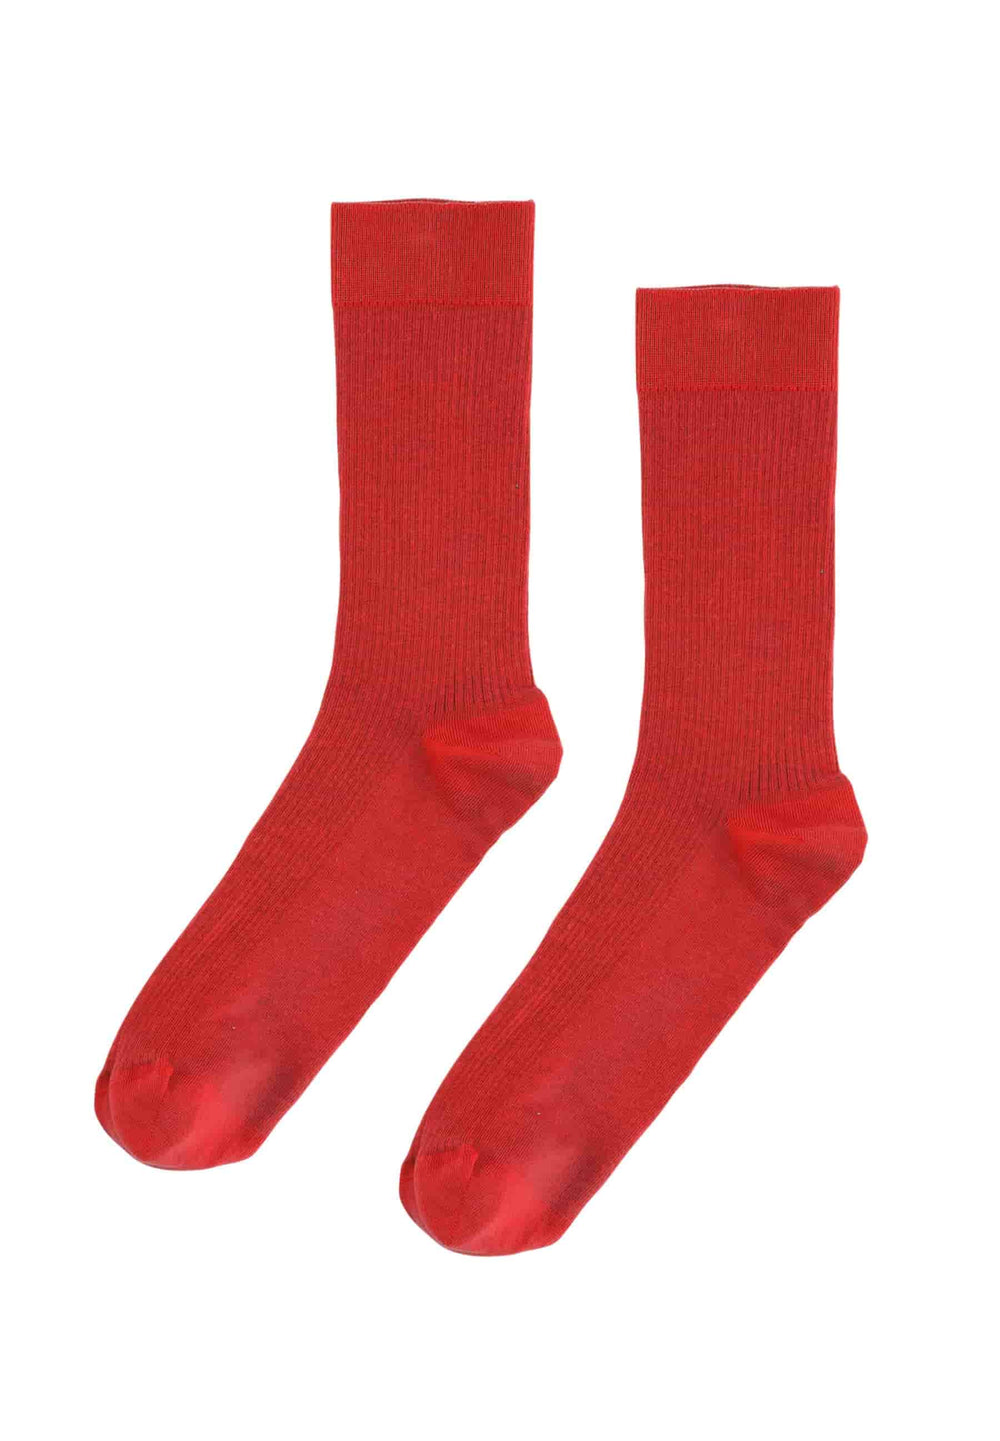 Colorful Standard Underwear Taille Unique Chaussettes Classic Organic Scarlet Red